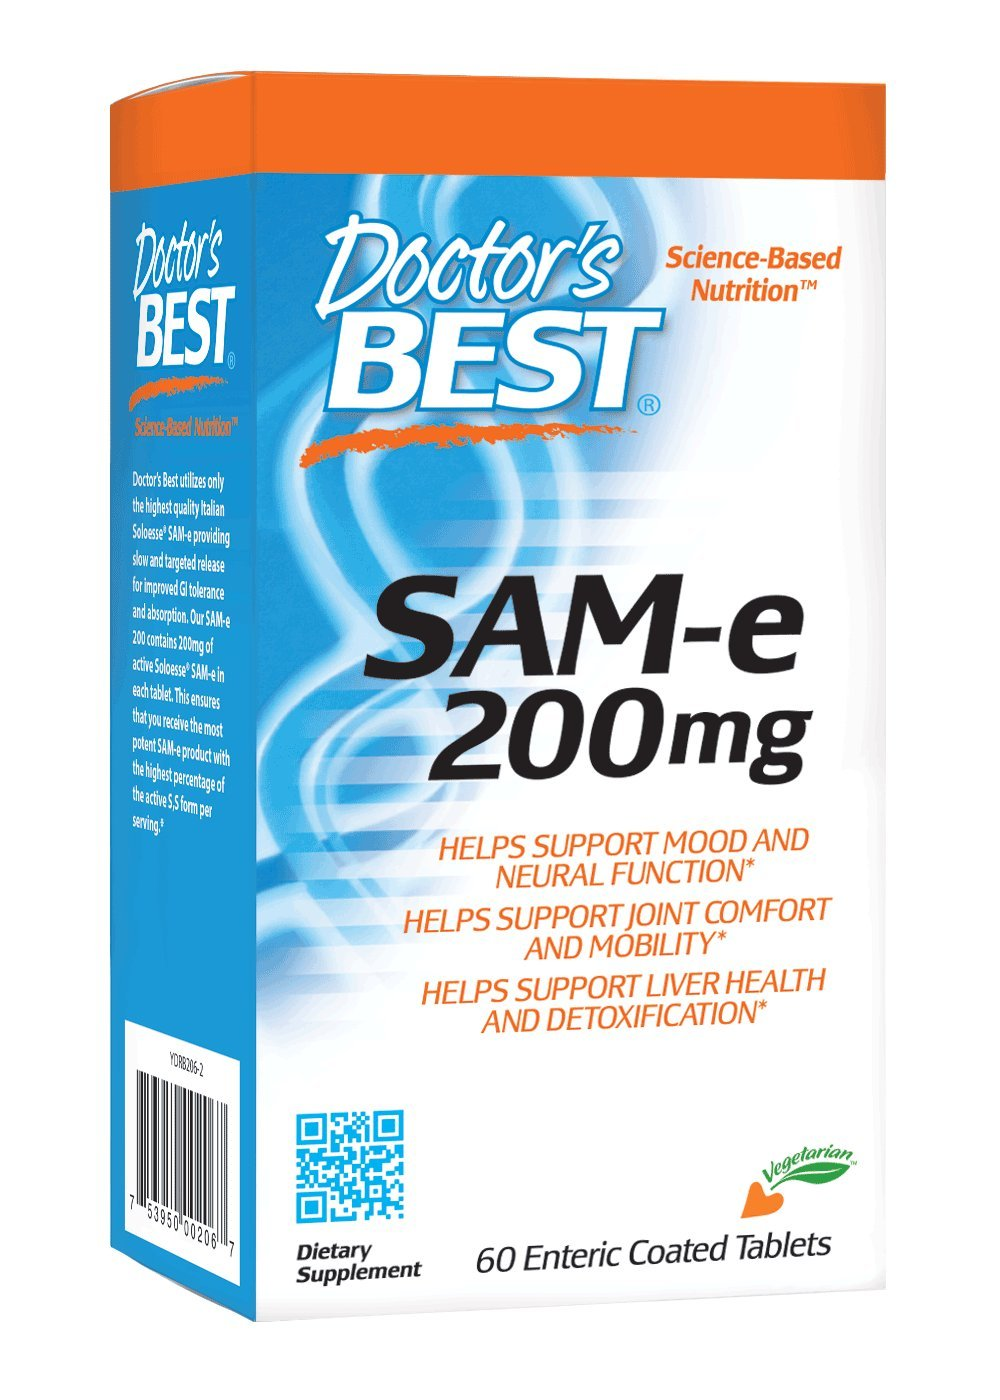 Doctors Best SAMe 200, 60 Enteric Coated Vegetarian Tablets (60 Enteric Coated Vegetarian Tablets): Amazon.es: Salud y cuidado personal